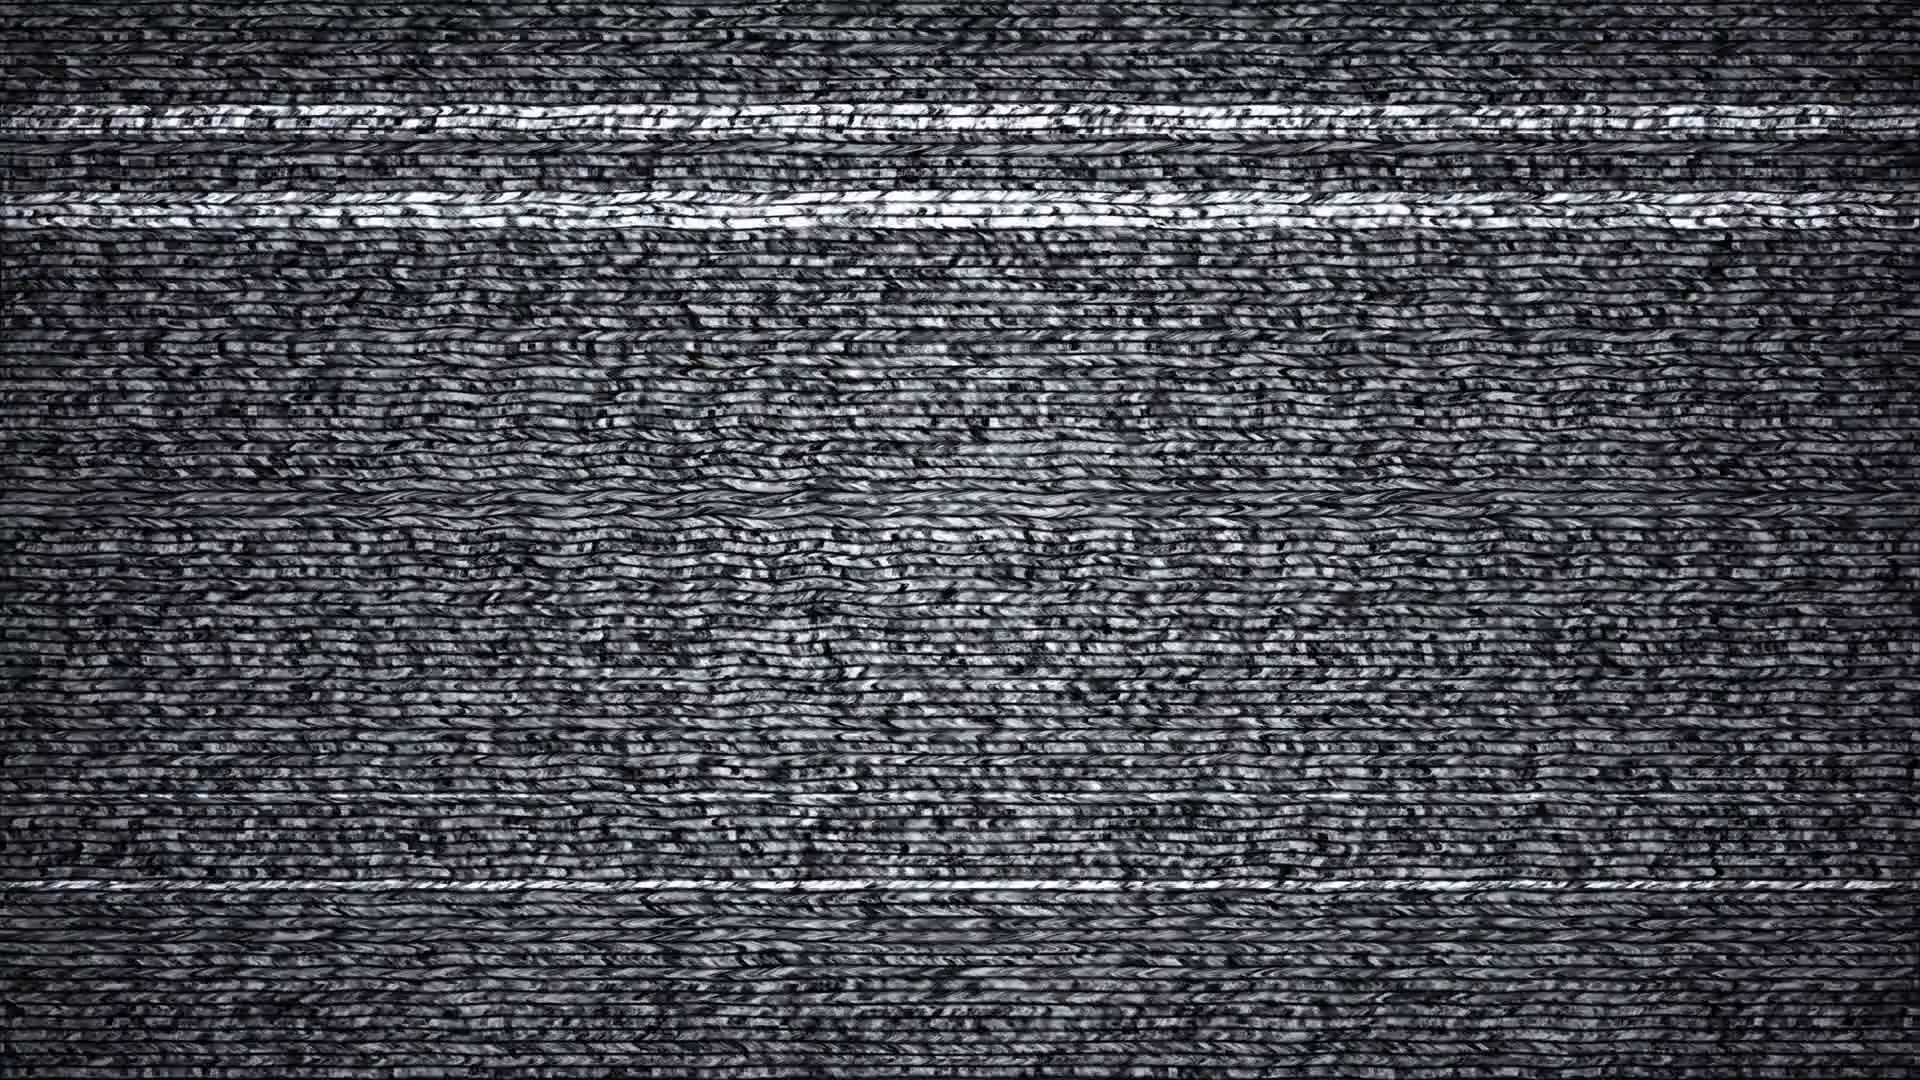 1920x1080 Static TV noise seamless loop abstract background 4k UHD (3840x2160) Motion  Background - VideoBlocks